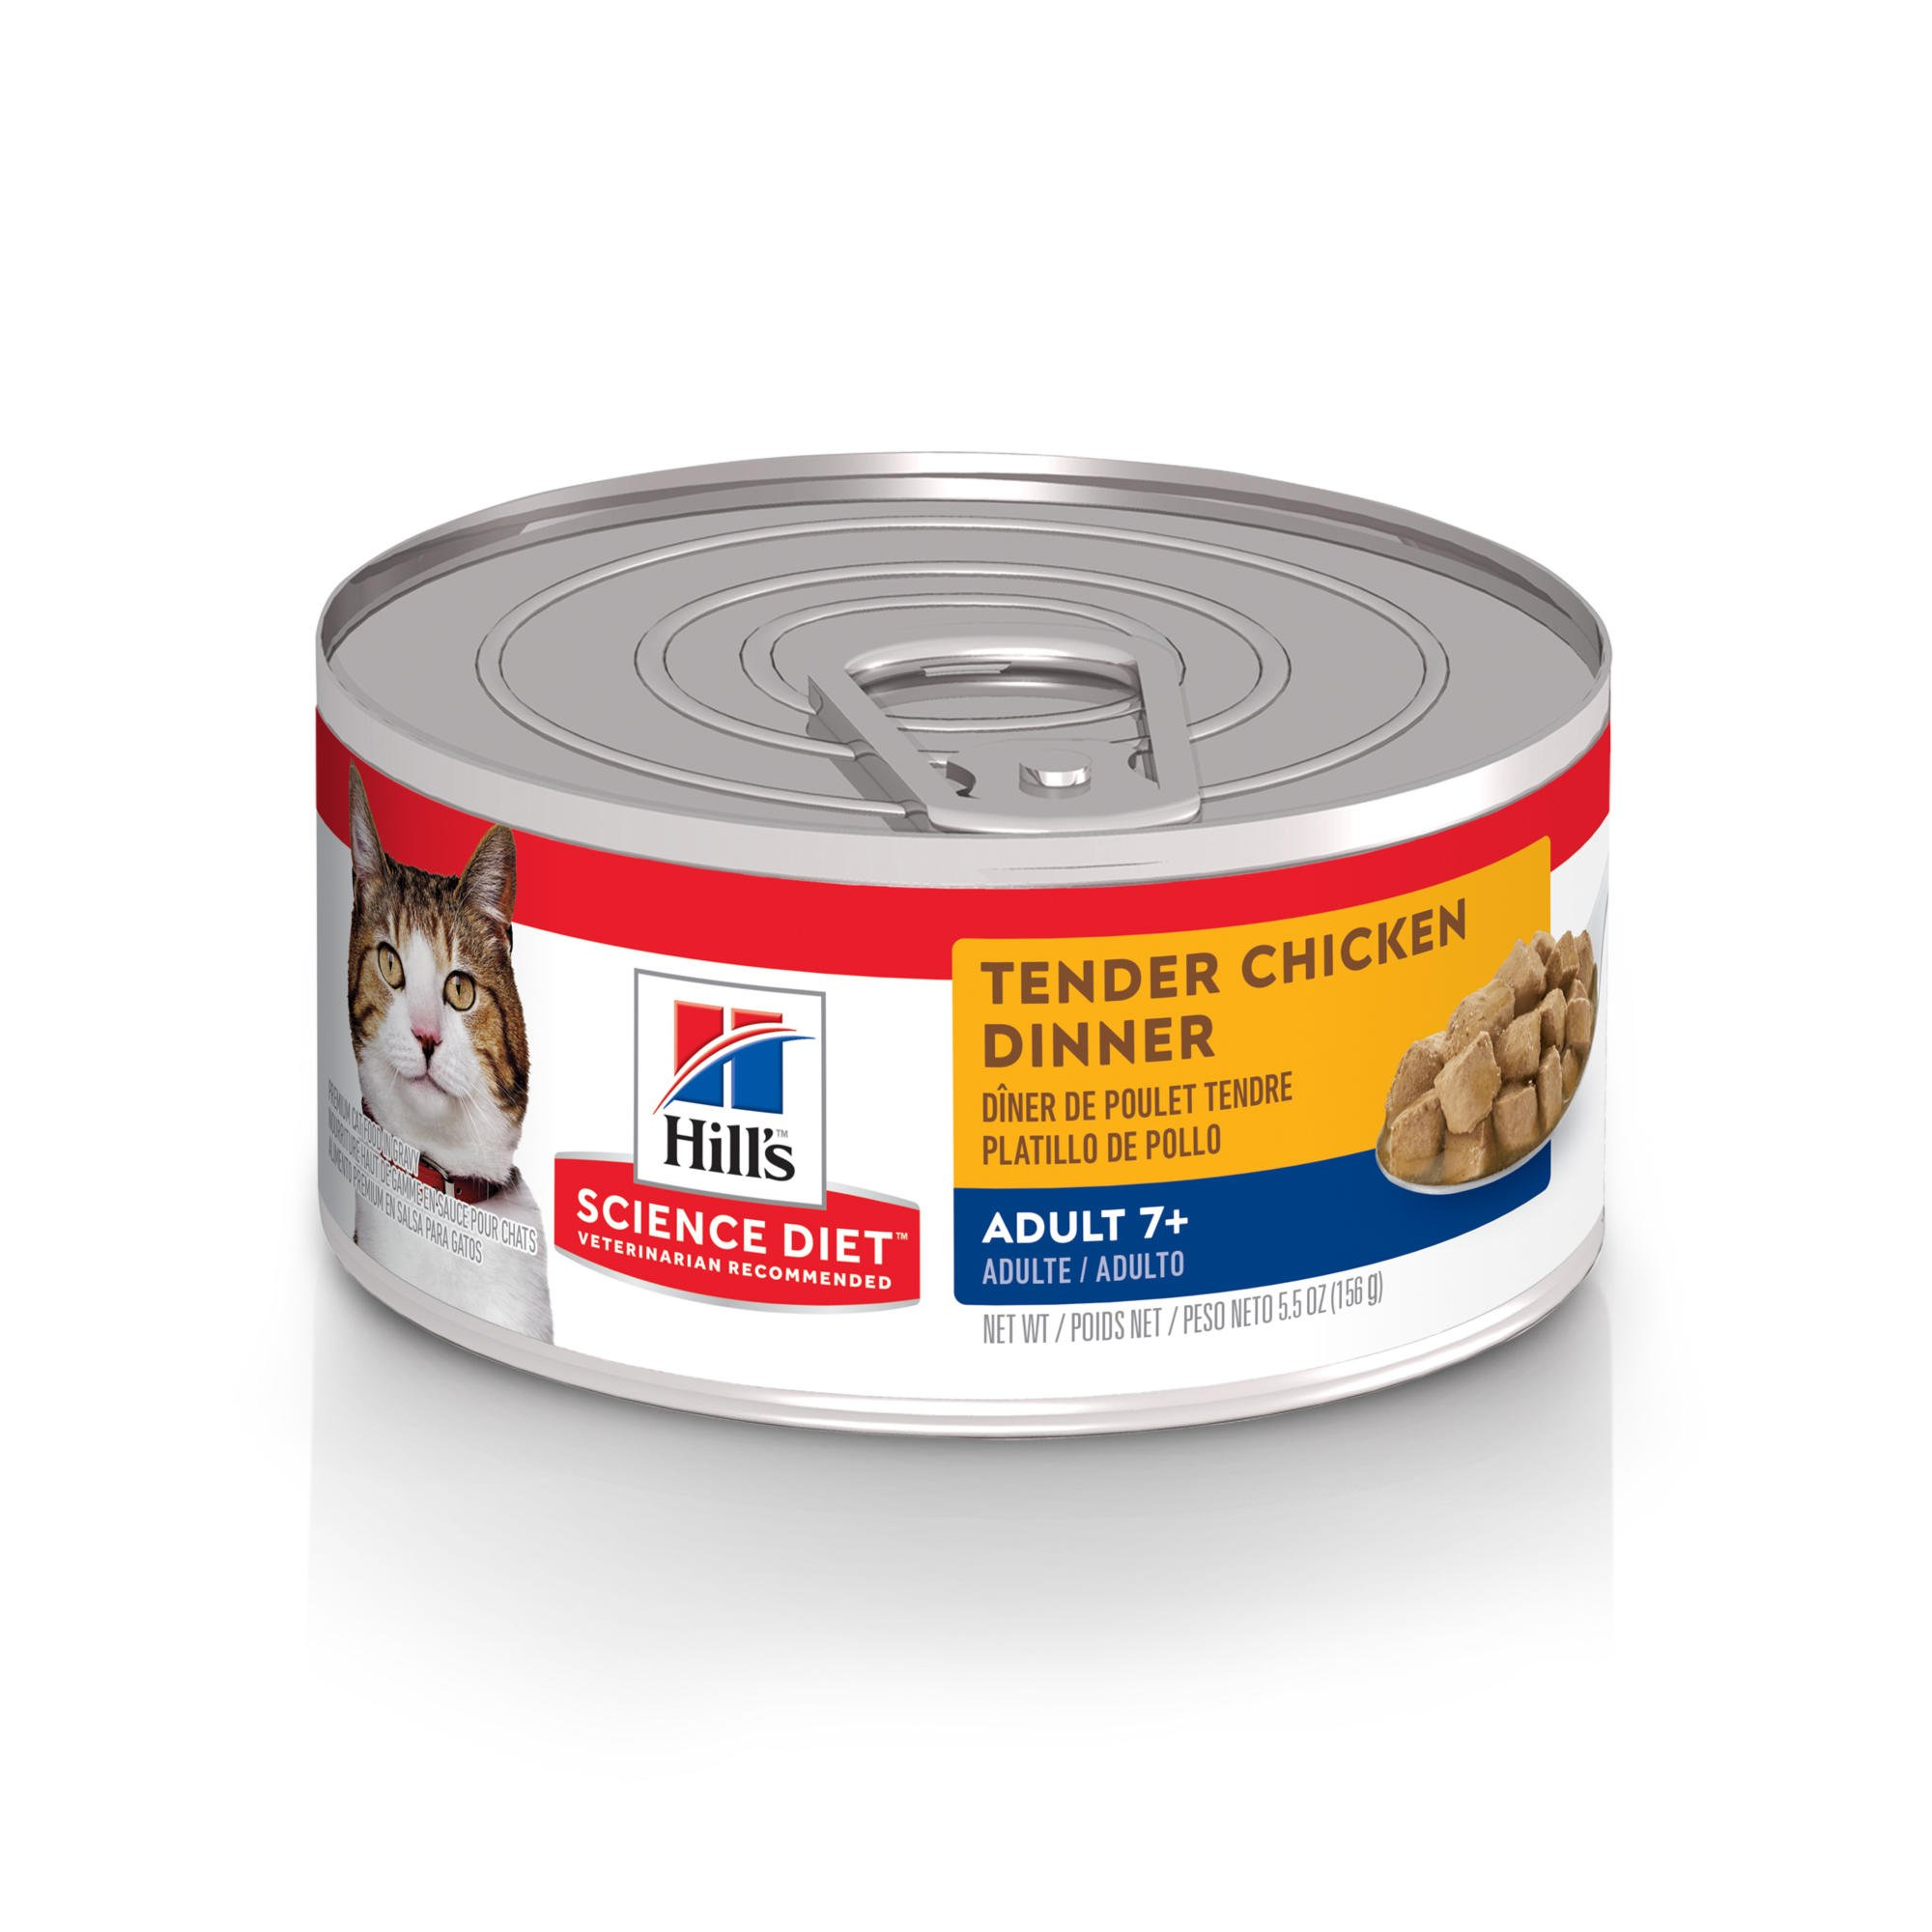 Hill's Science Diet Tender Chicken Dinner Senior Adult Canned Cat Food